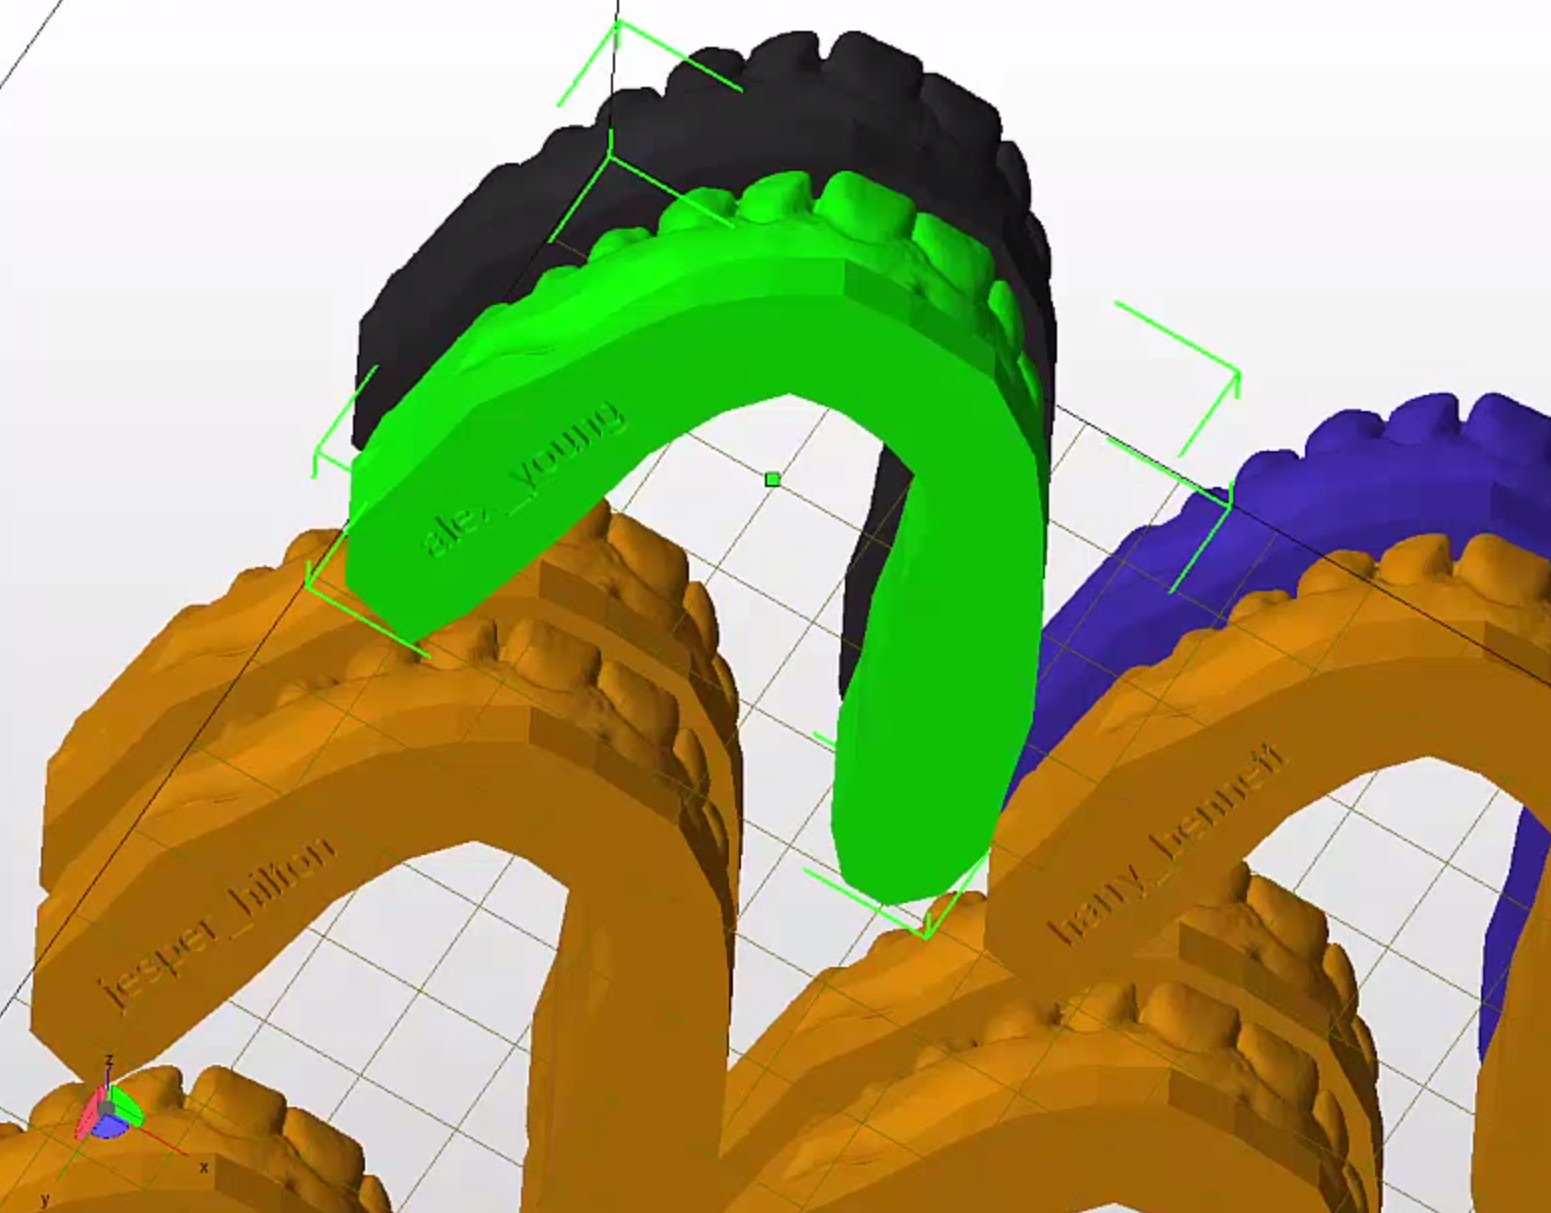 netfabb Version 6 Released With Incredible New Features